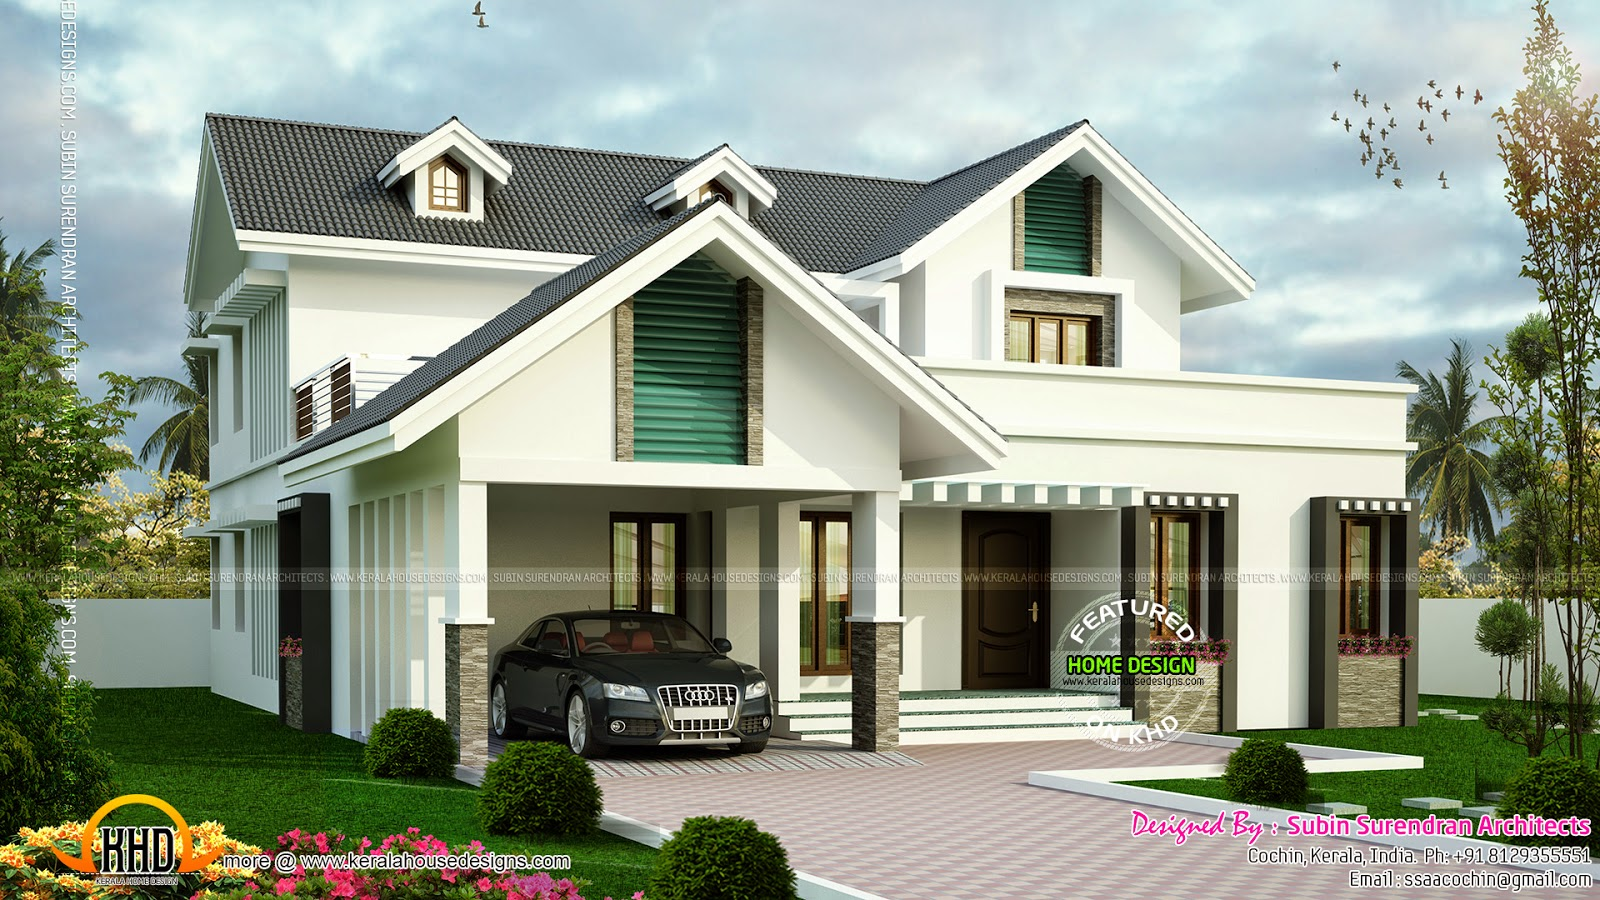 Modern sloping roof house with dormer windows kerala for Dormer house plans designs